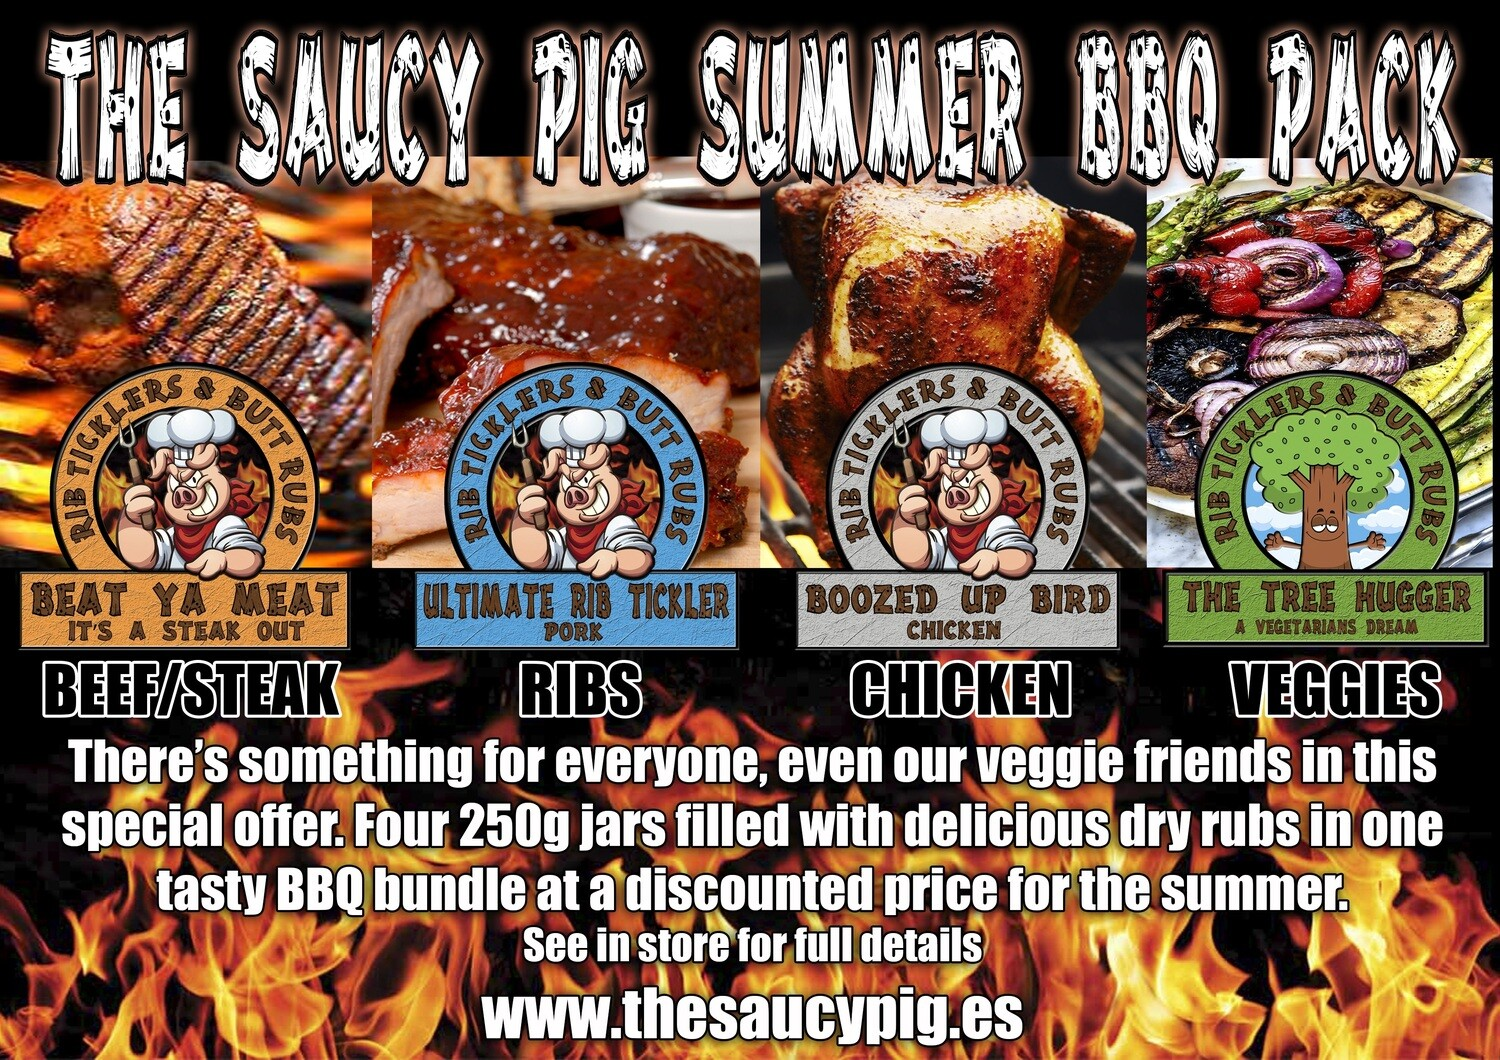 The Saucy Pig Summer BBQ Pack